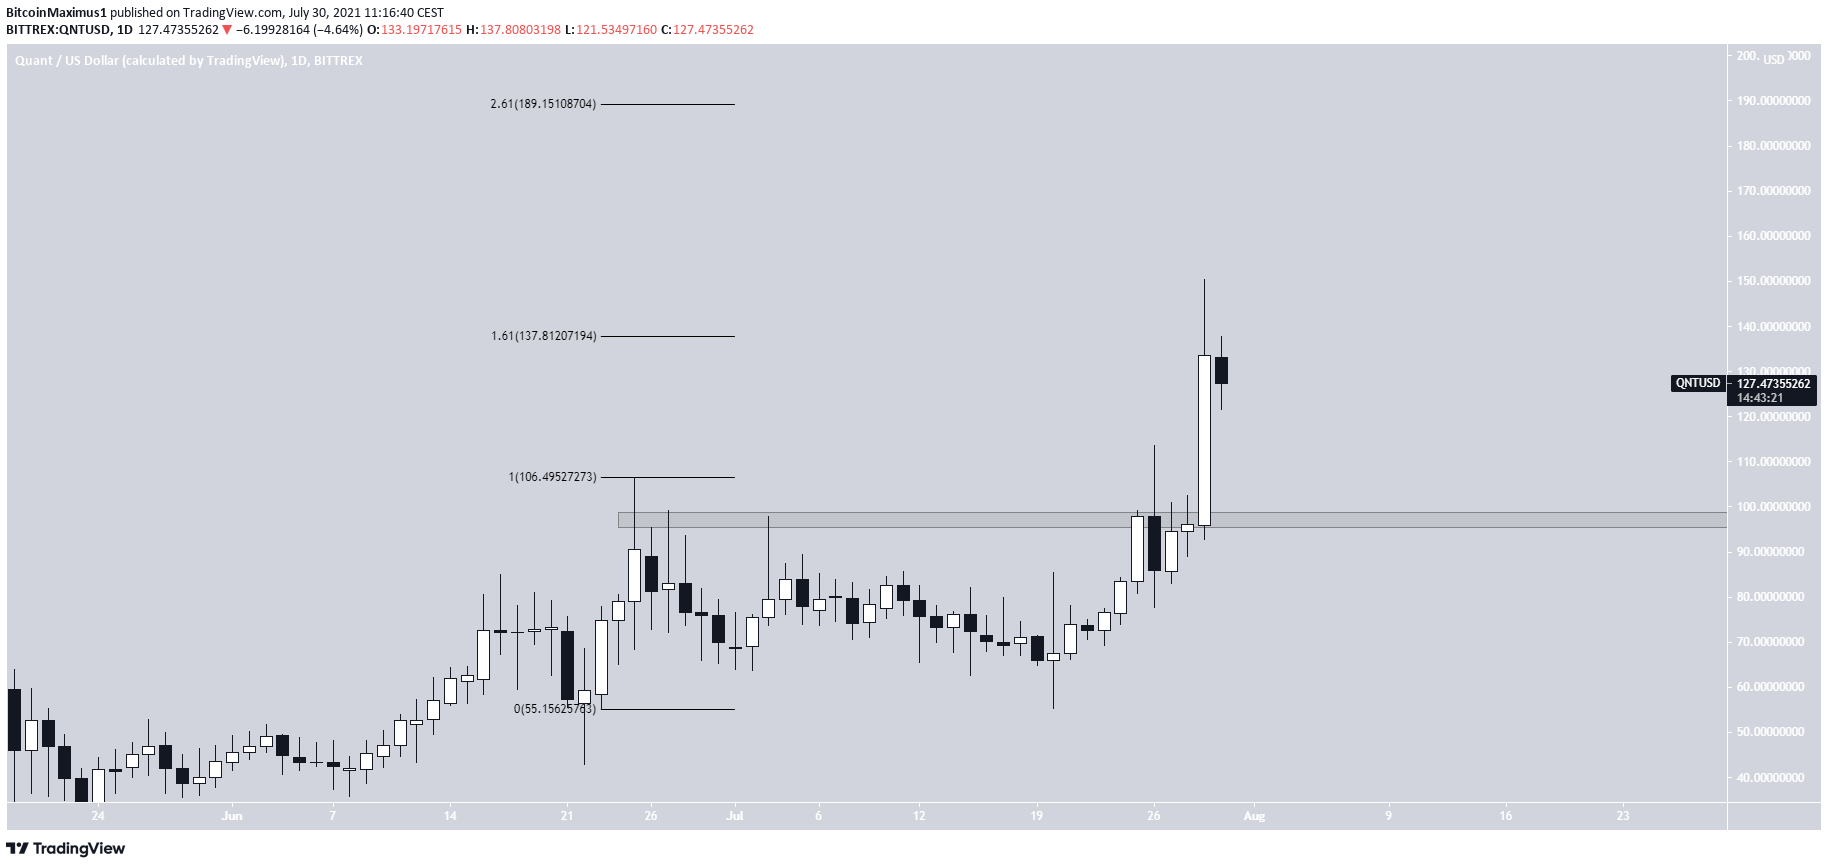 QNT all-time high